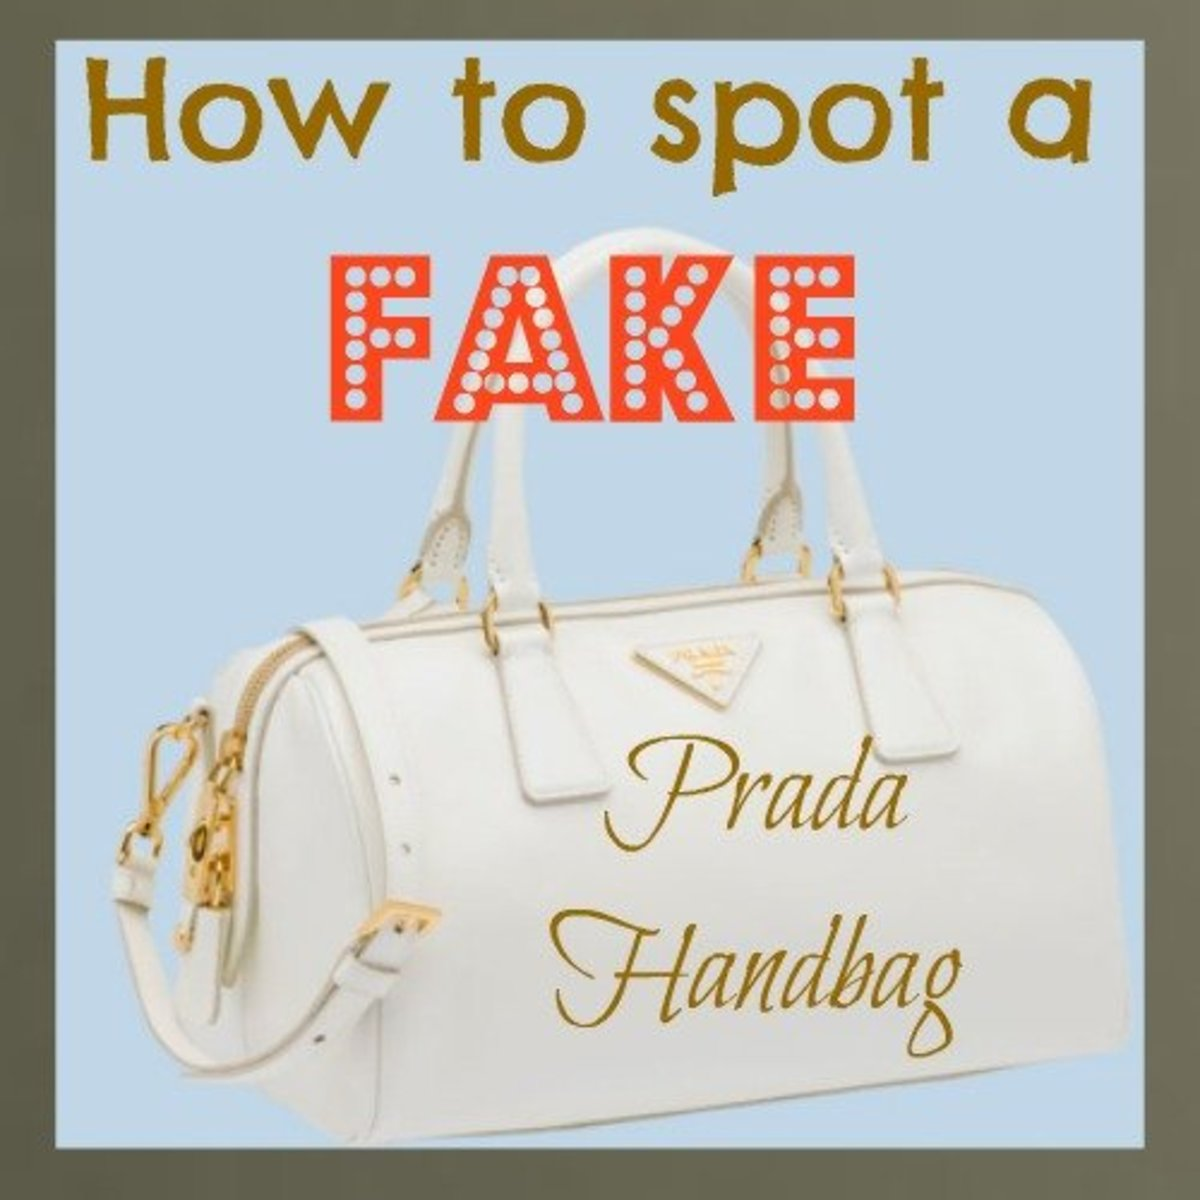 How to spot a fake Prada Handbag